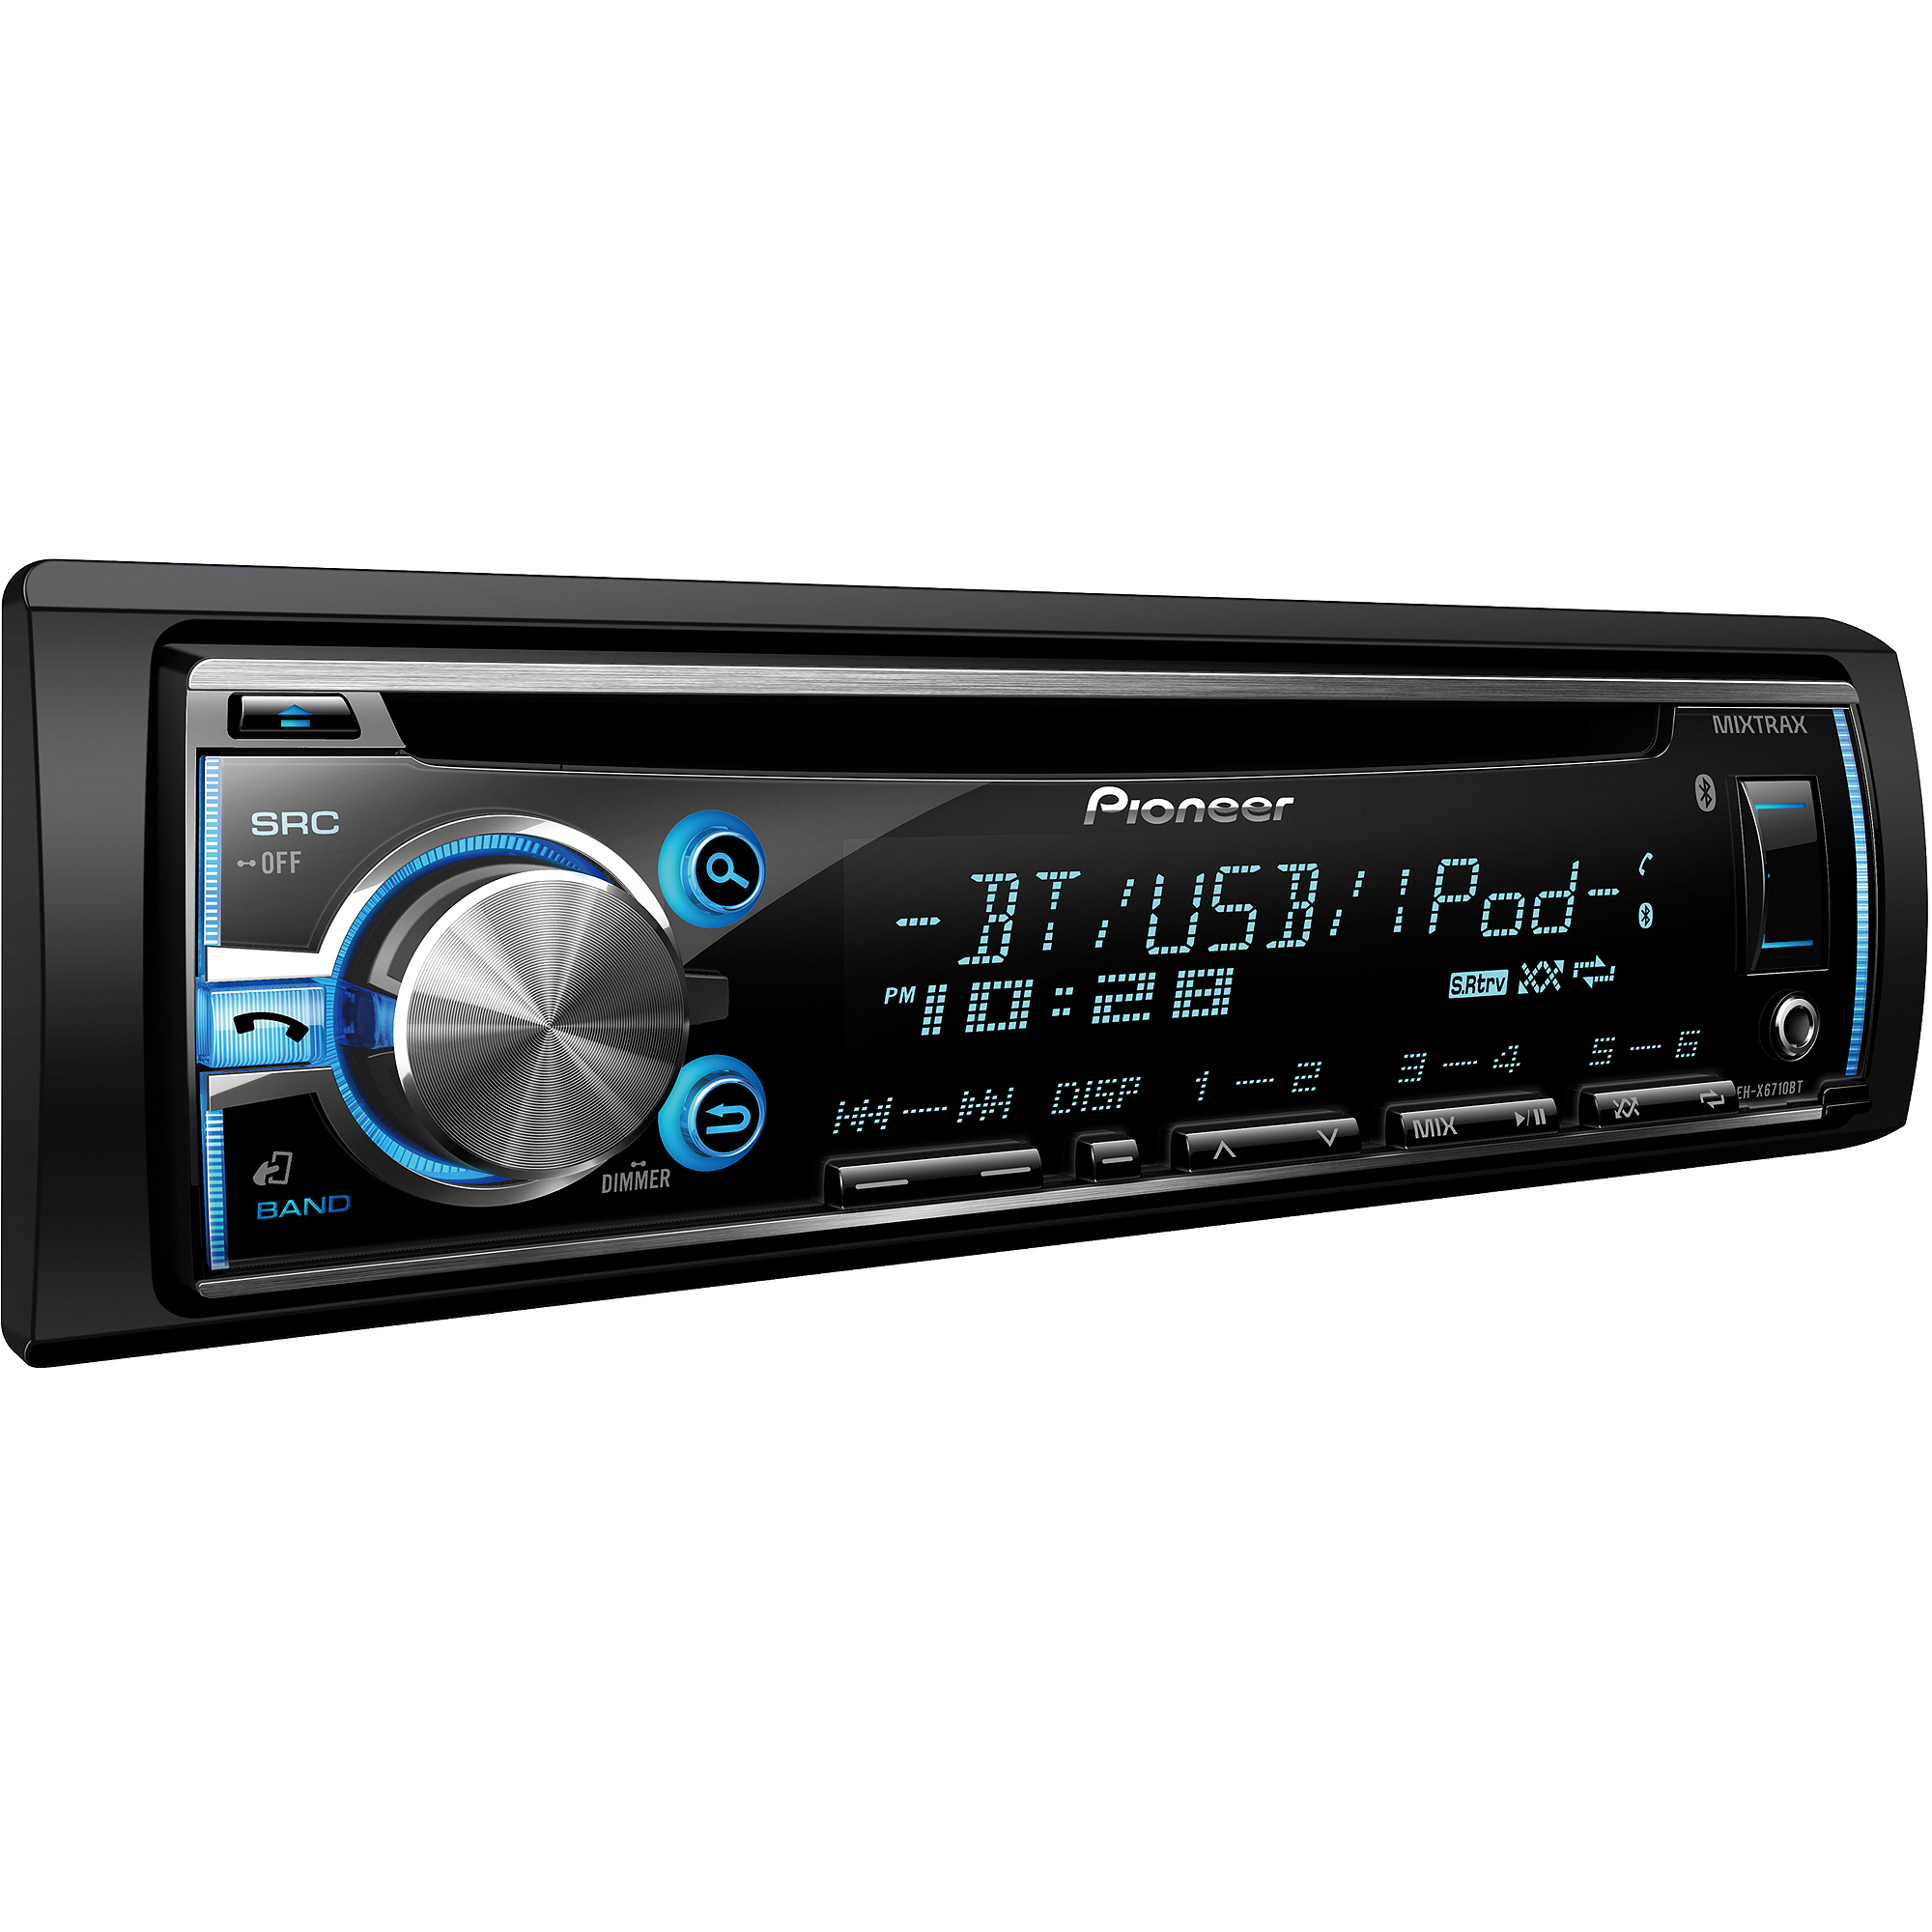 Stereos At Walmart Electronics Not Lossing Wiring Diagram Stereo Harness Pioneer Deh X6710bt Single Cd Receiver With Built In Car And Speakers System